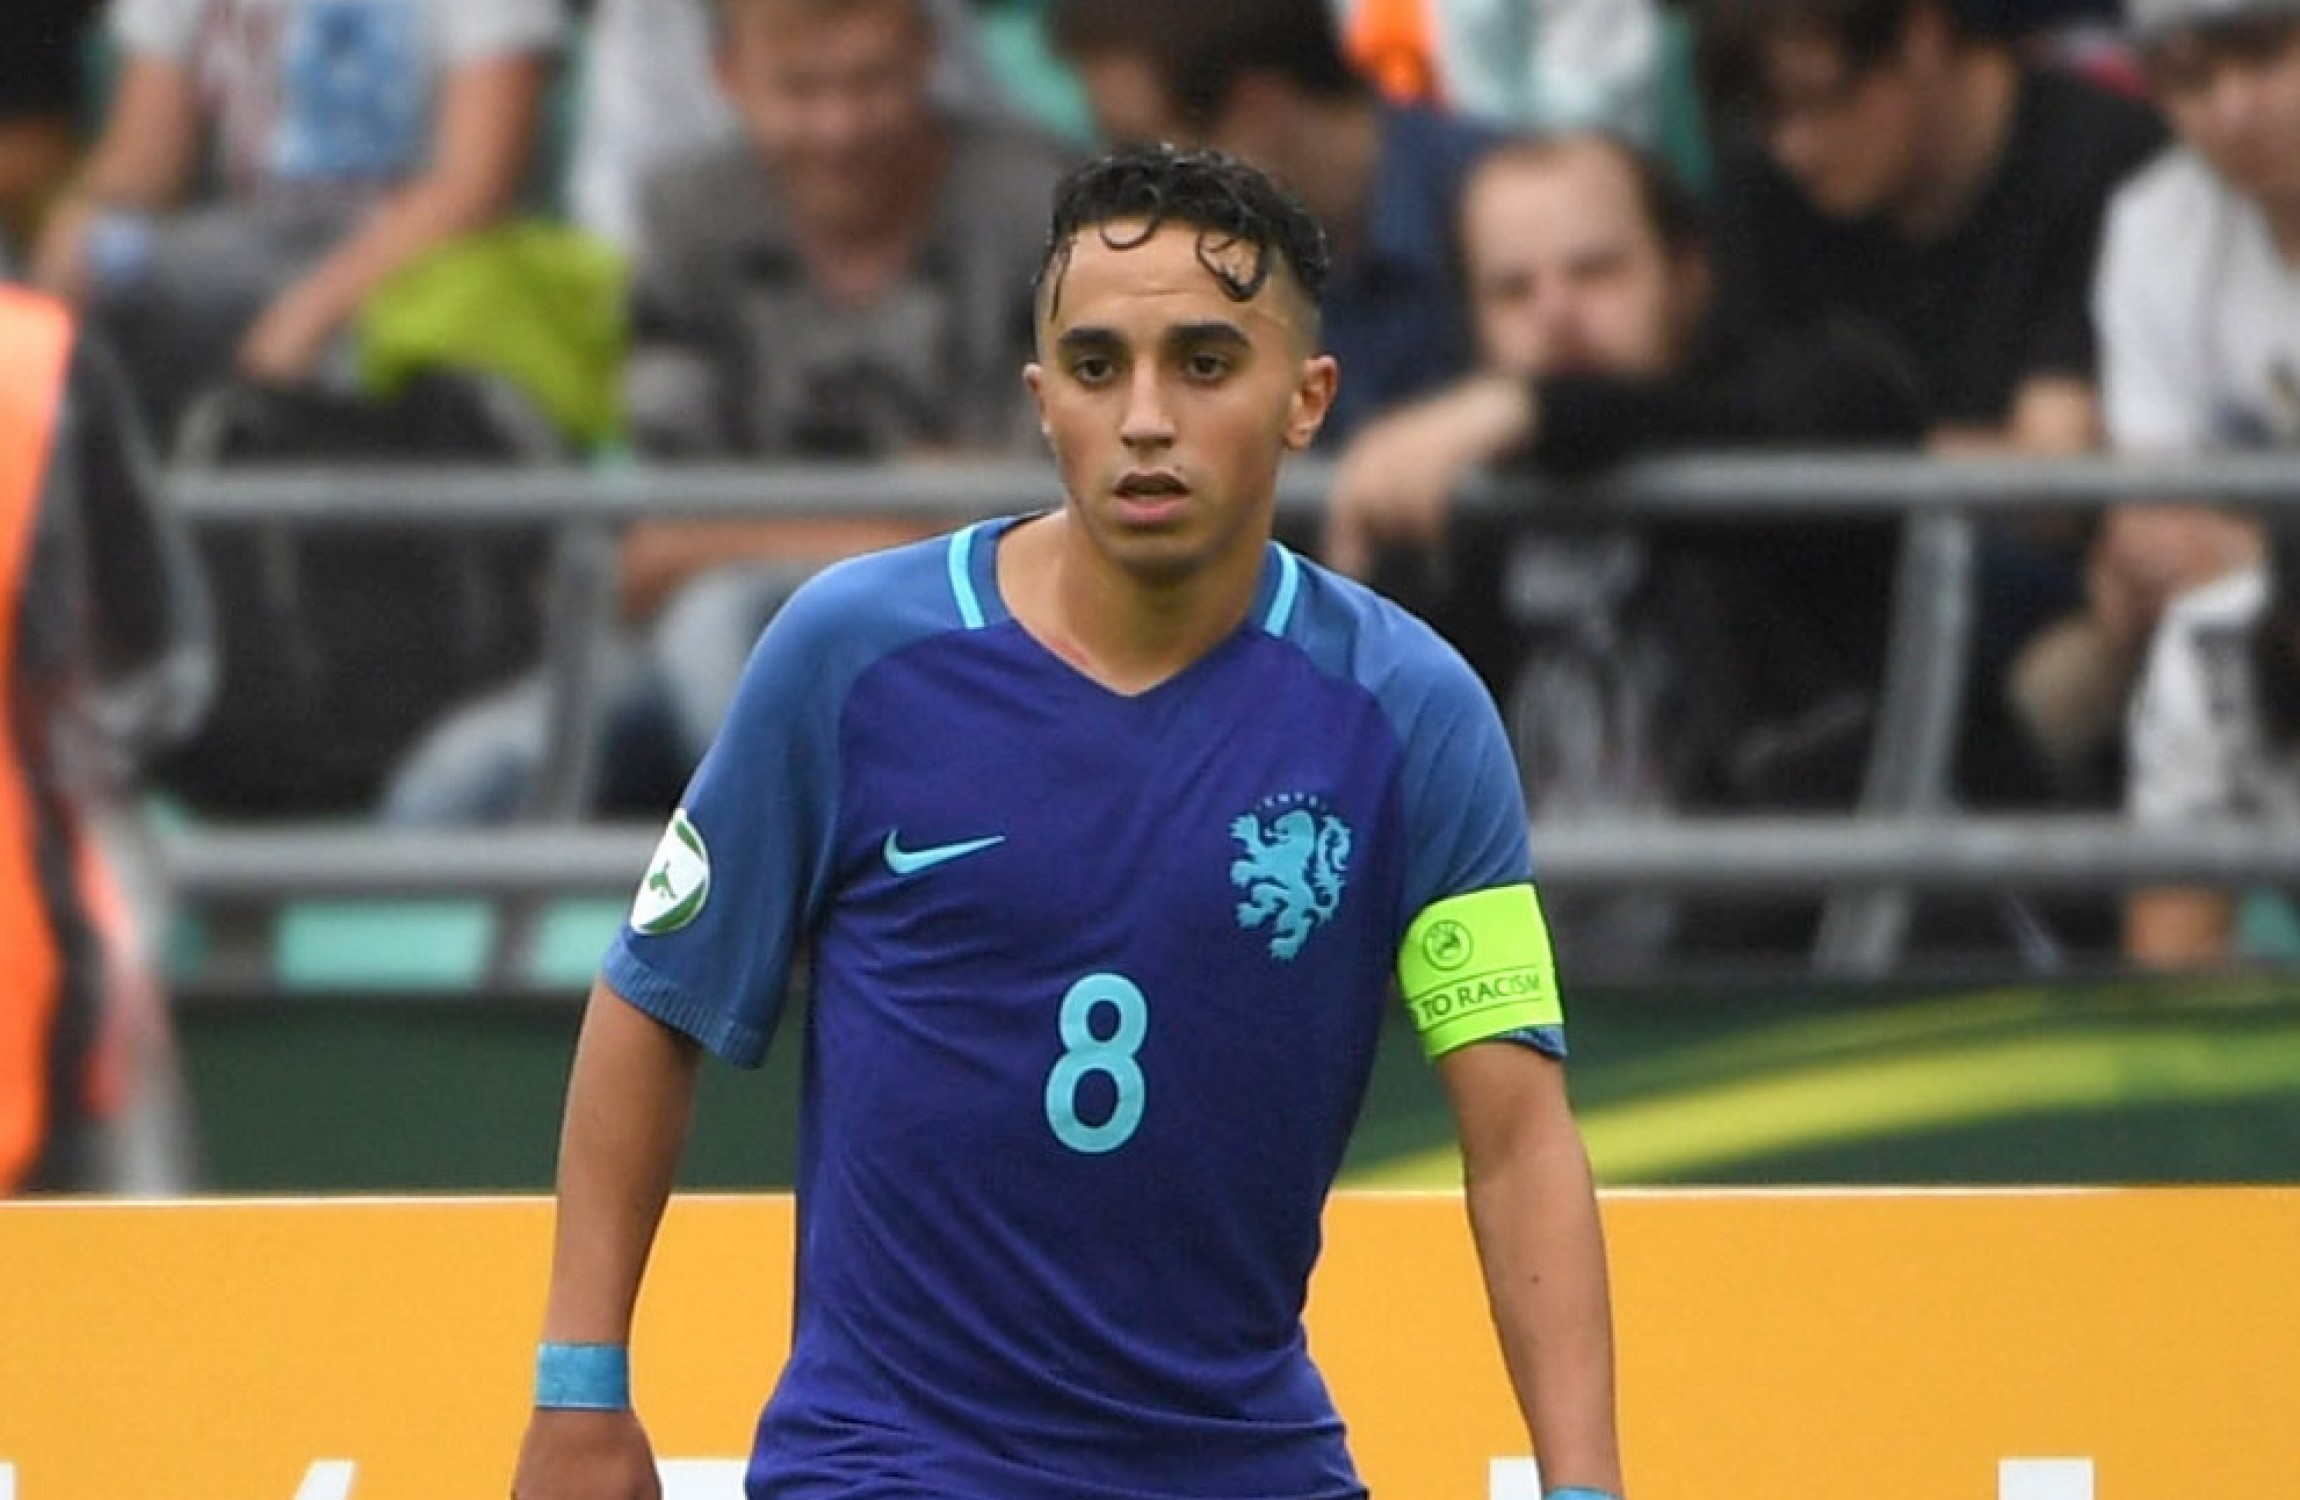 Ajax Confirm Abdelhak Nouri Has Suffered Serious And Permanent Brain Damage